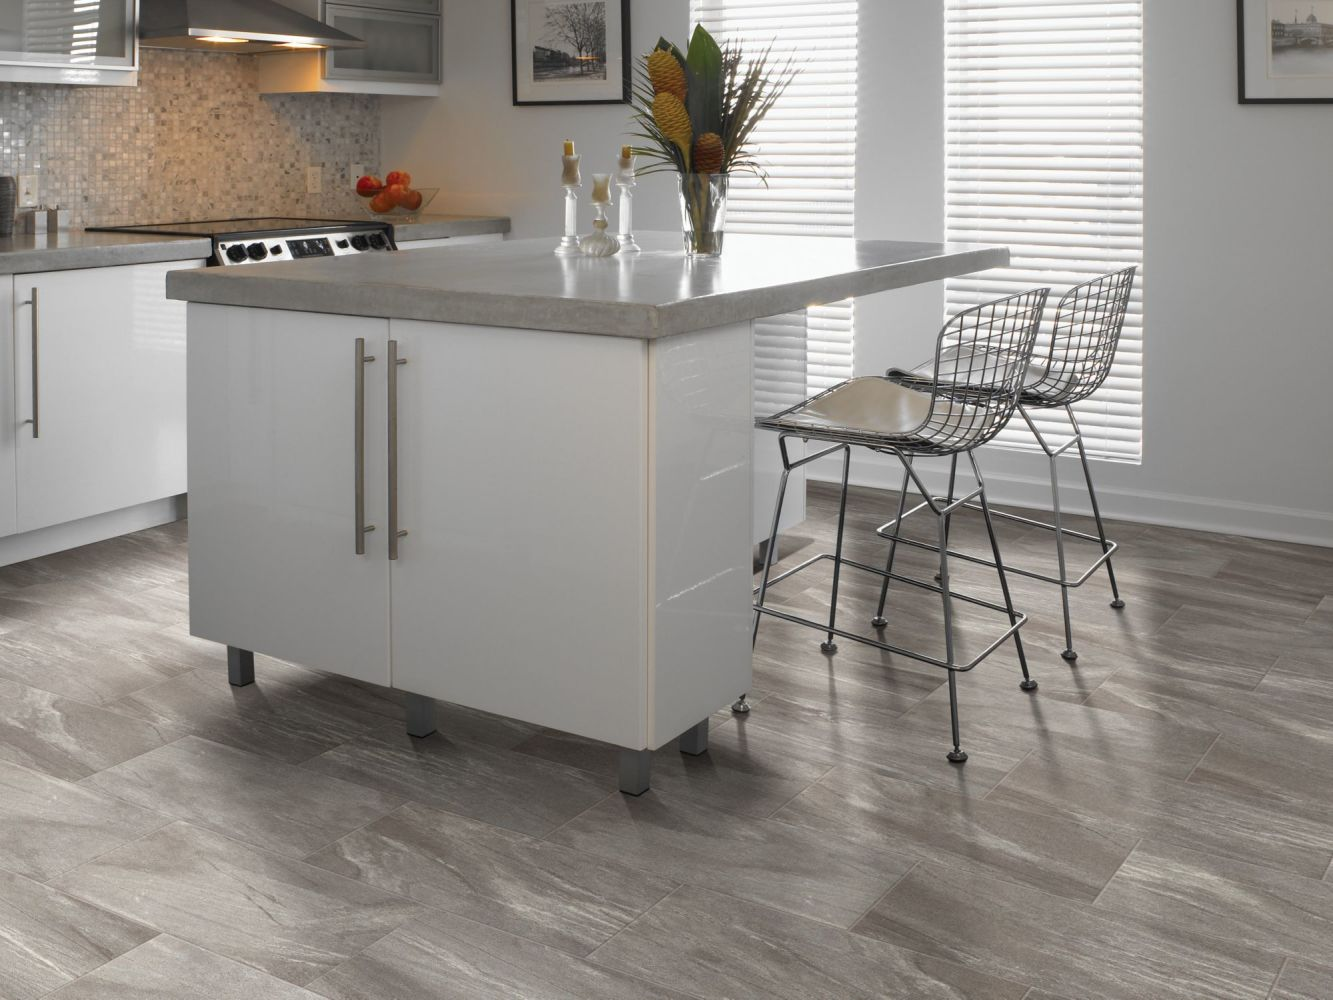 Shaw Floors Resilient Property Solutions First Class Tile Kingsport 00518_VE147